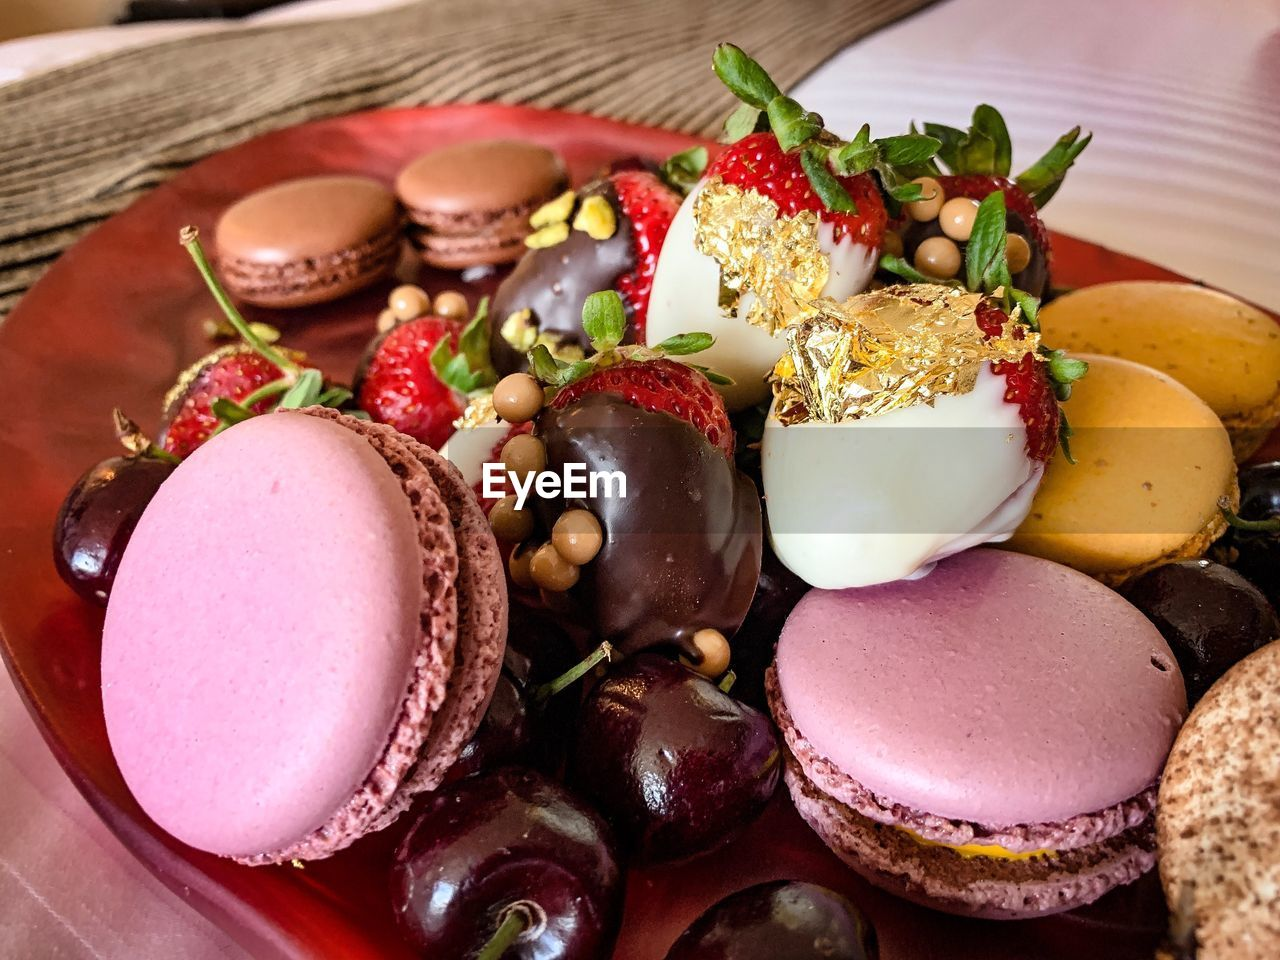 food and drink, food, freshness, still life, indoors, fruit, healthy eating, ready-to-eat, plate, table, close-up, no people, indulgence, wellbeing, high angle view, serving size, sweet, sweet food, vegetable, strawberry, temptation, garnish